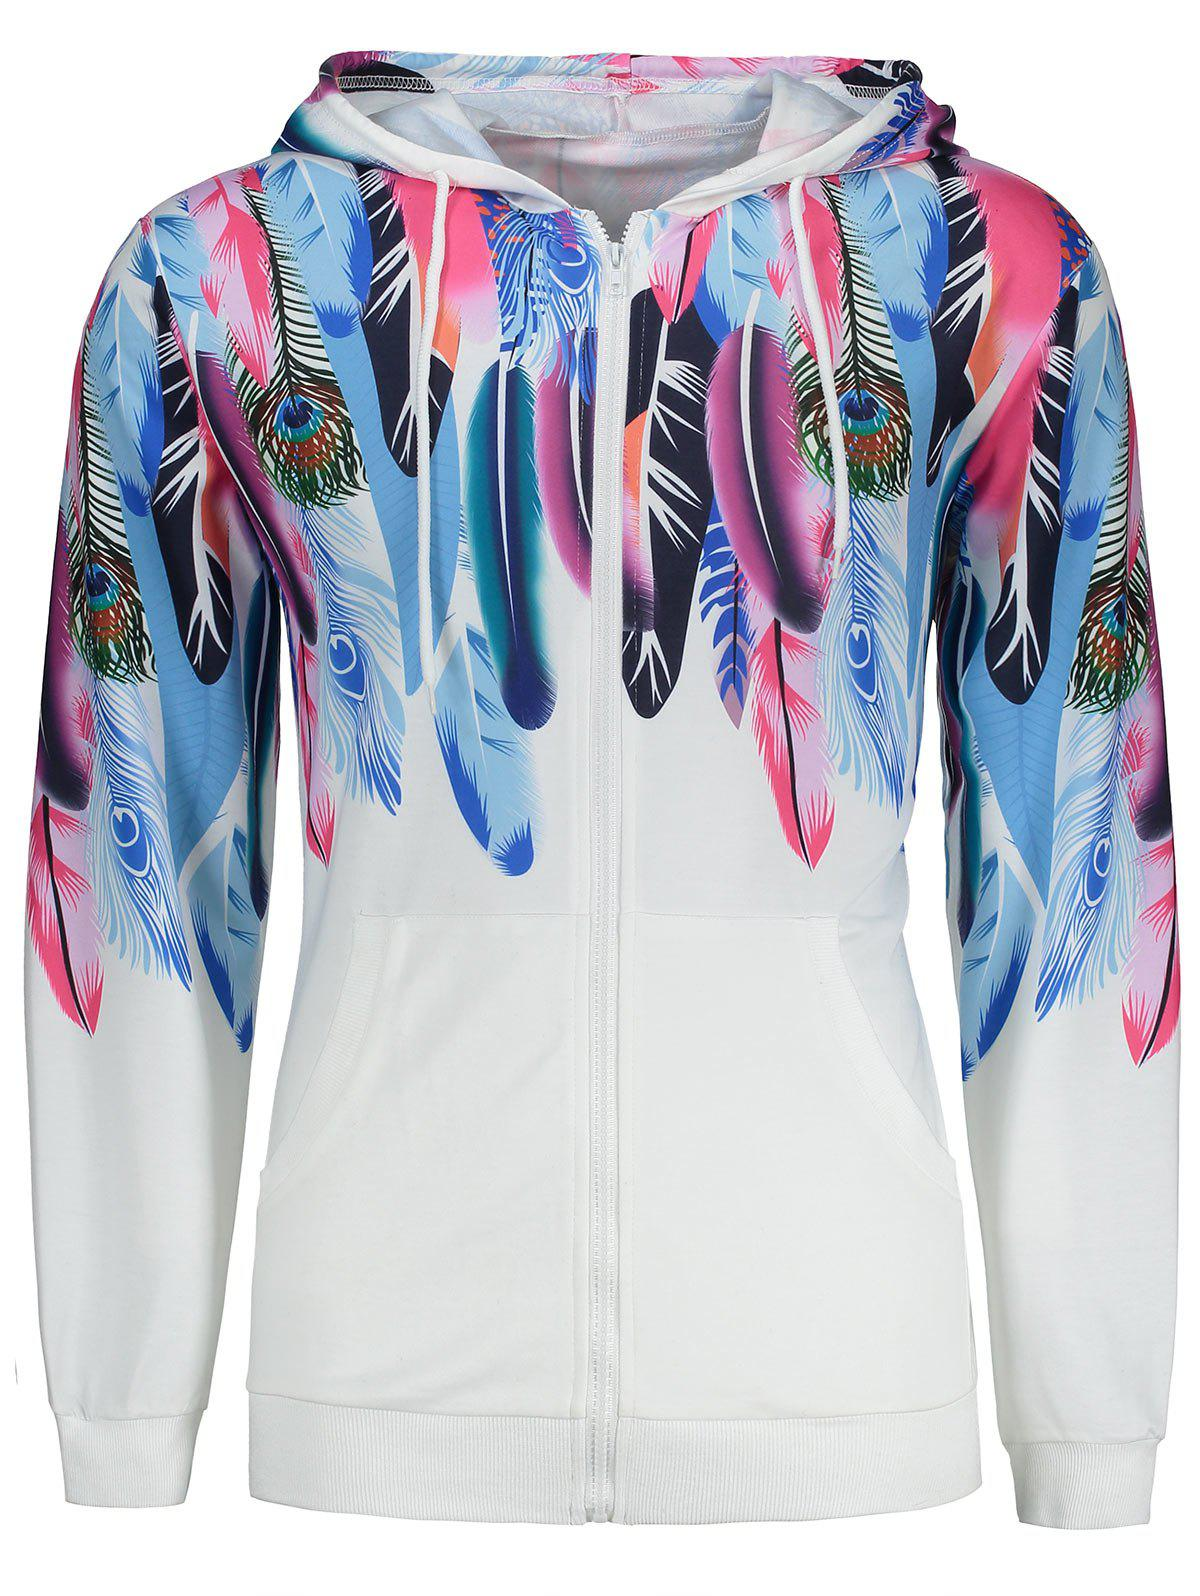 Pocket Design Peacock Feather Zippered Hoodie side pocket constrast color patchwork zippered hoodie